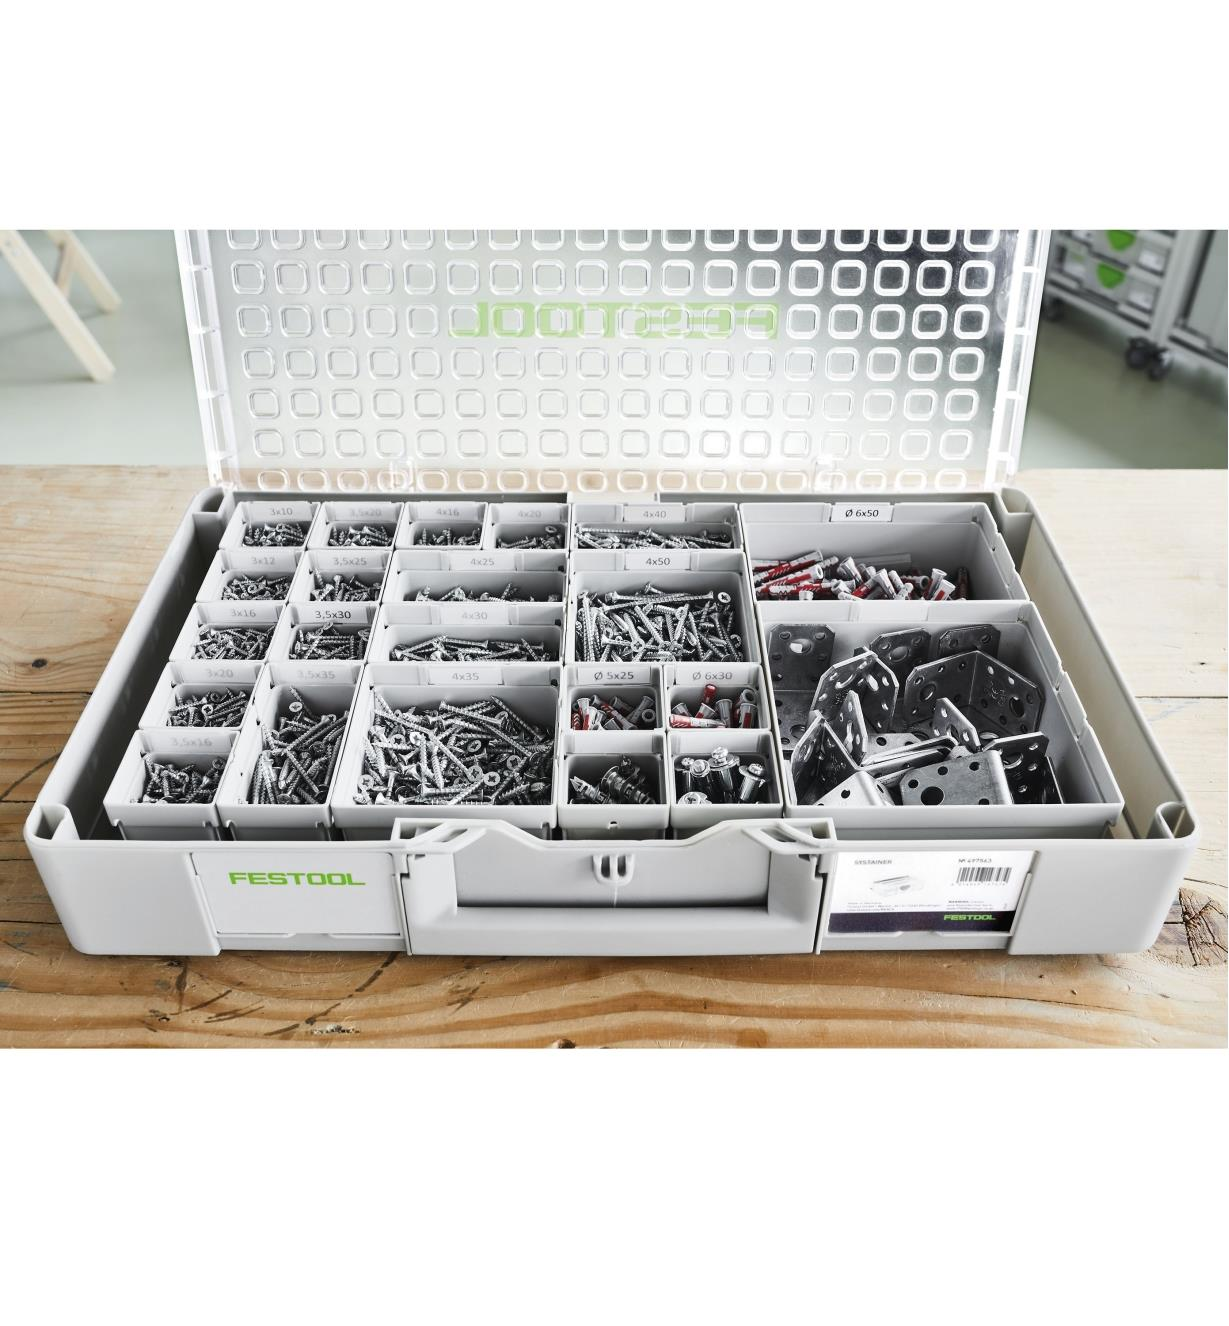 An organized assortment of hardware shown in the Systainer Organizer